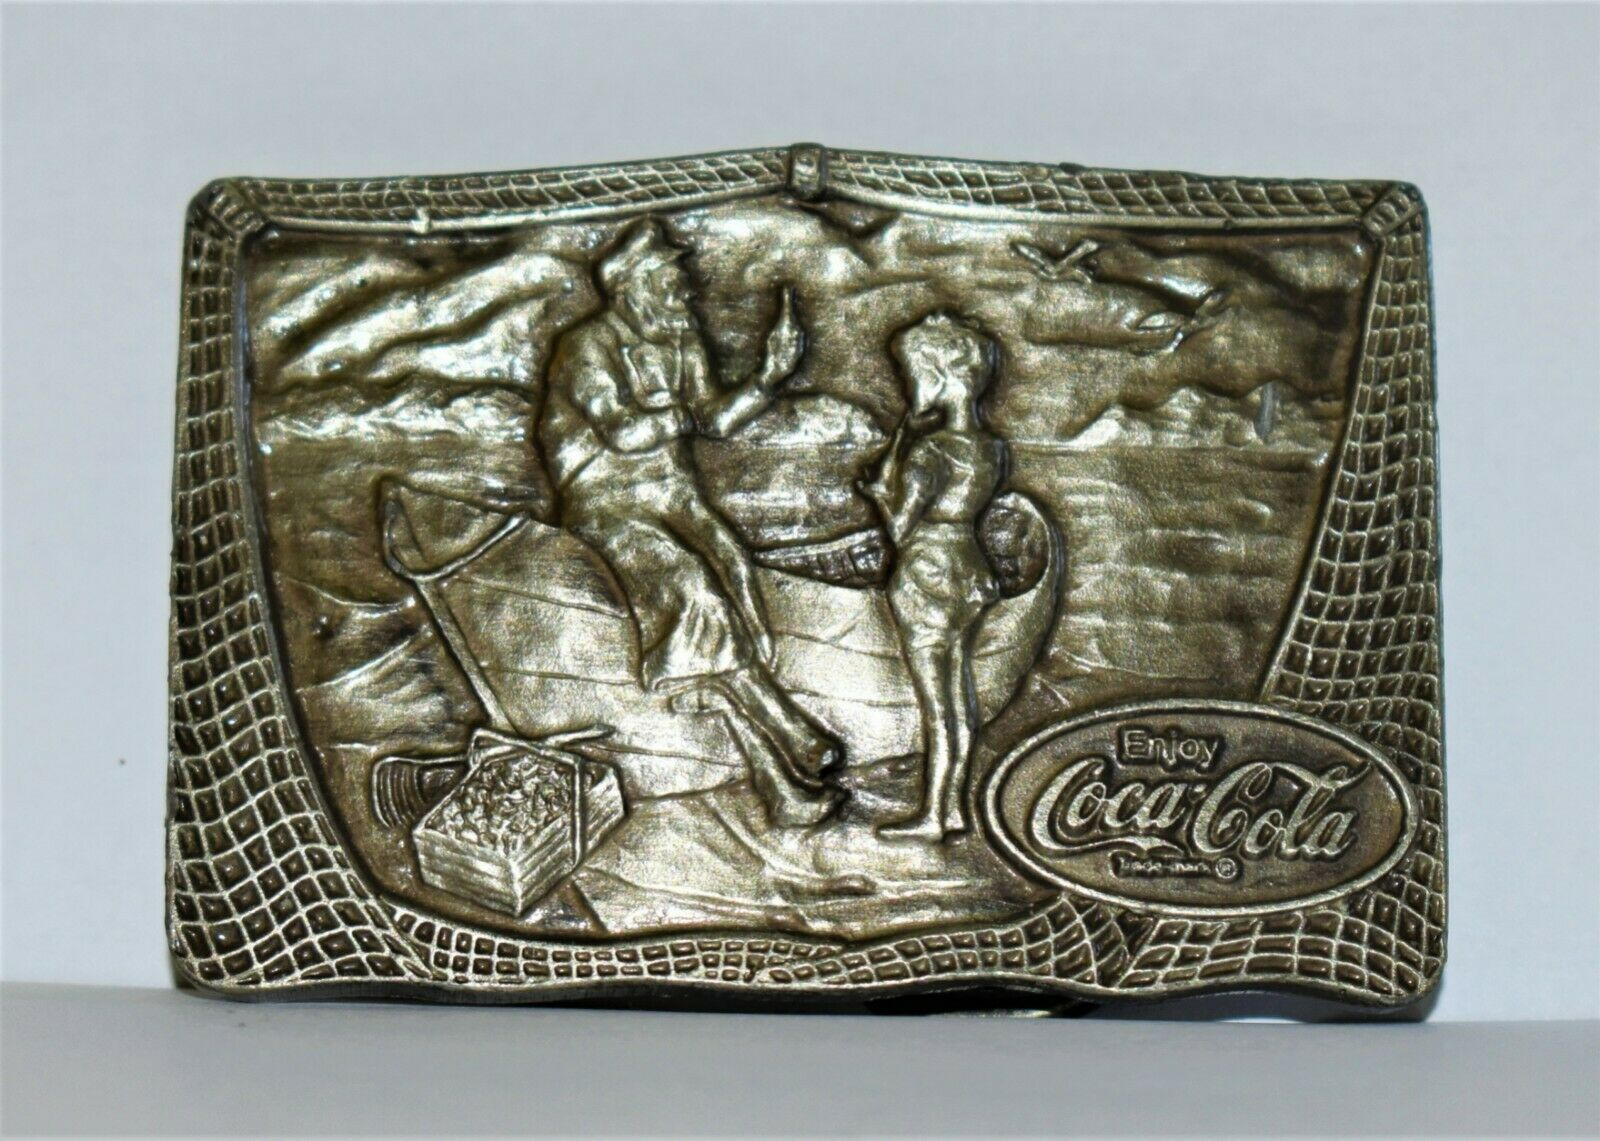 Vintage Coca Cola Pewter Buckle of a Fisherman & Child Having a Coke, Excellent